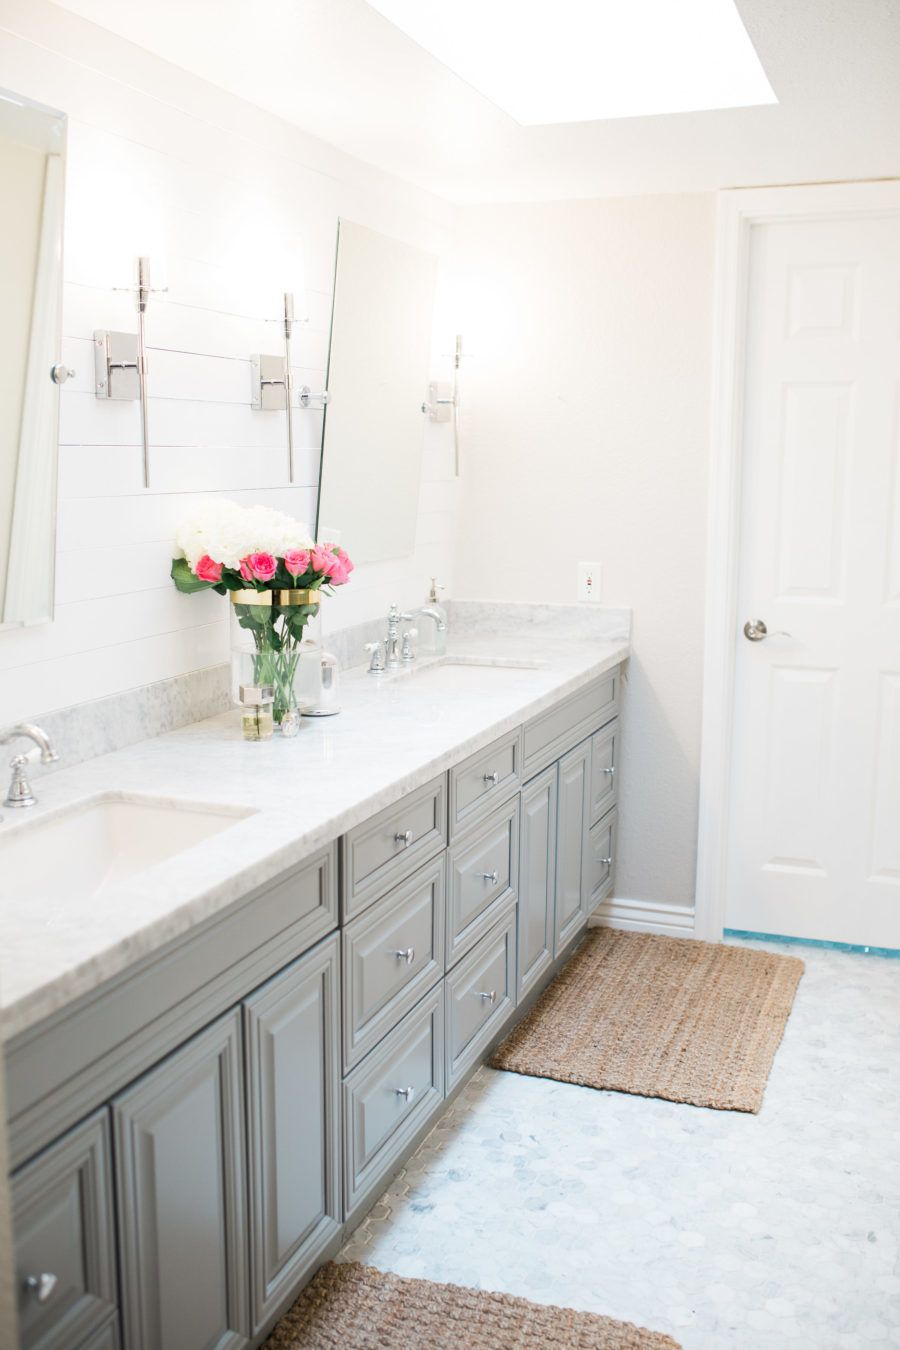 Master bathroom remodel design before and after on a budget in 2018 ...